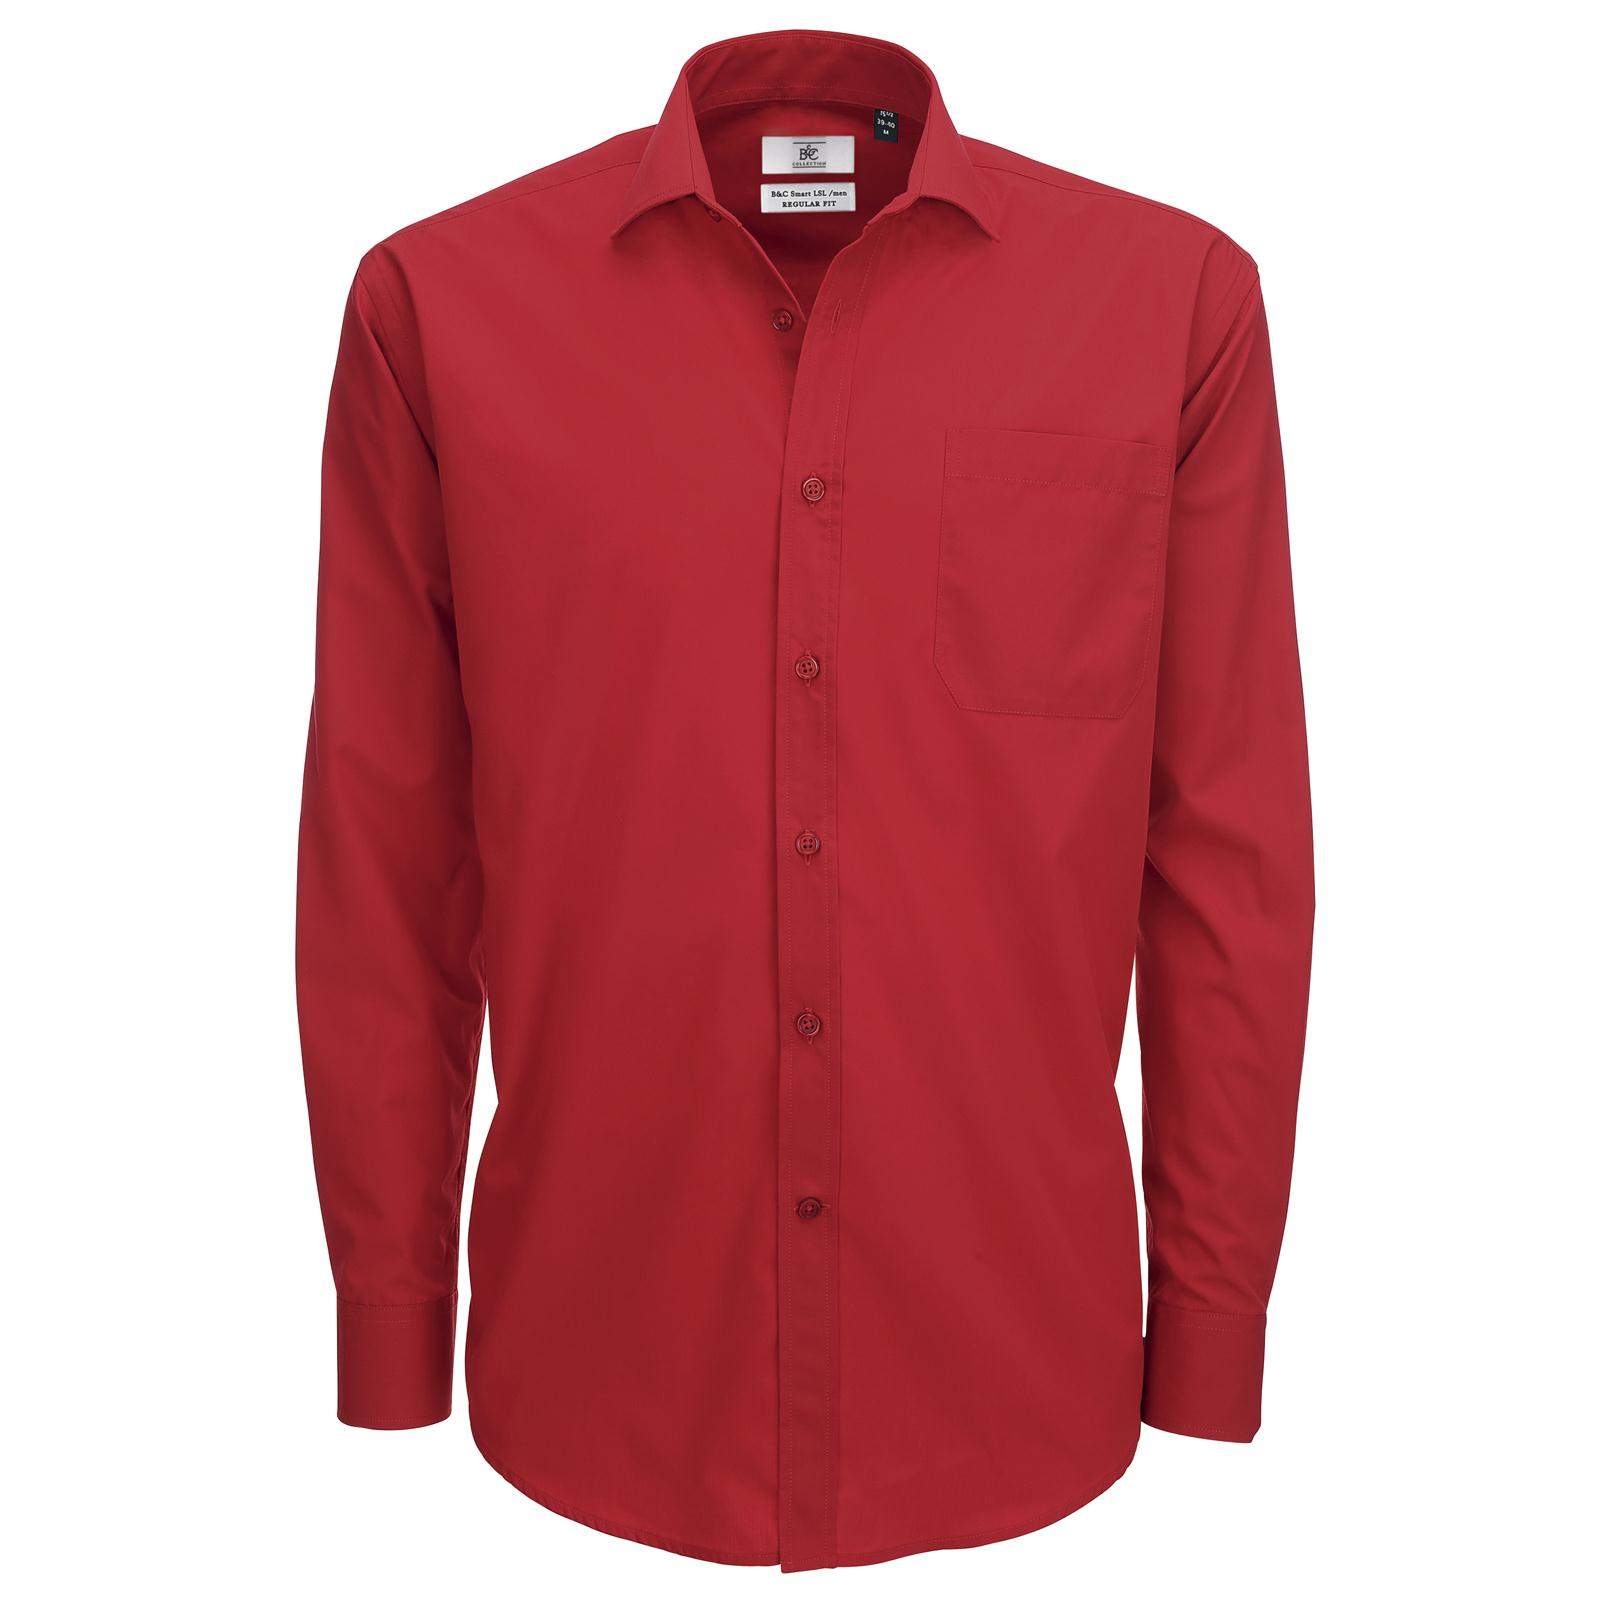 B c Mens Smart Work Long Sleeve Polycotton Shirt in 5 Colours S ... a273b1ef7fc